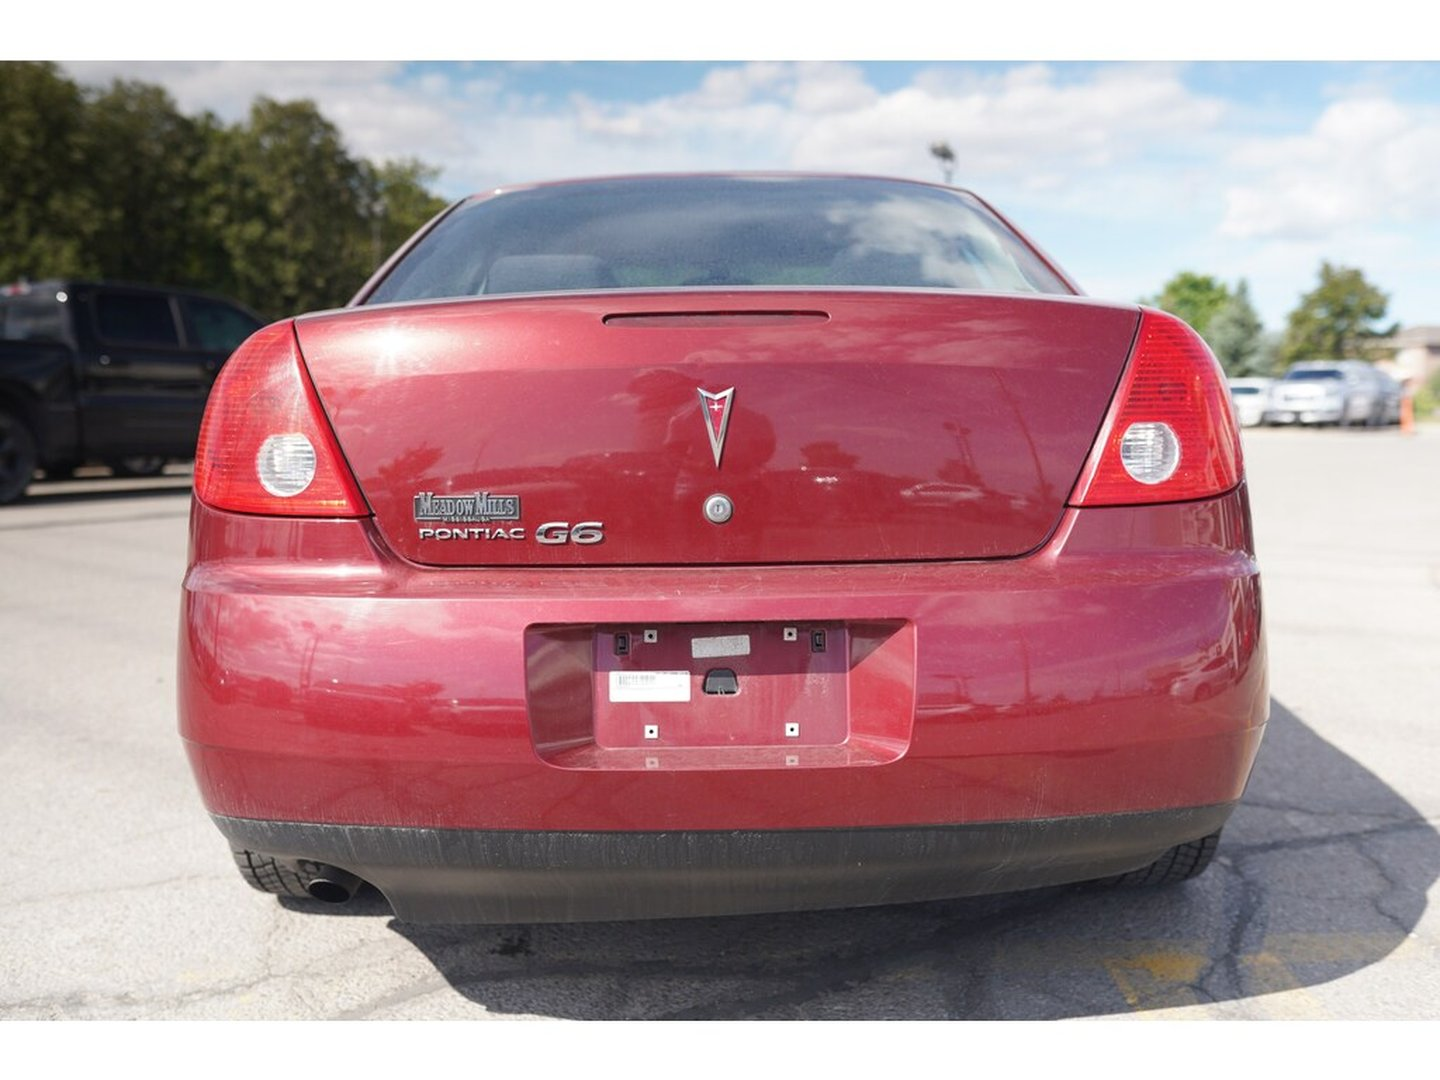 2008 Pontiac G6 SE for sale in Mississauga, Ontario